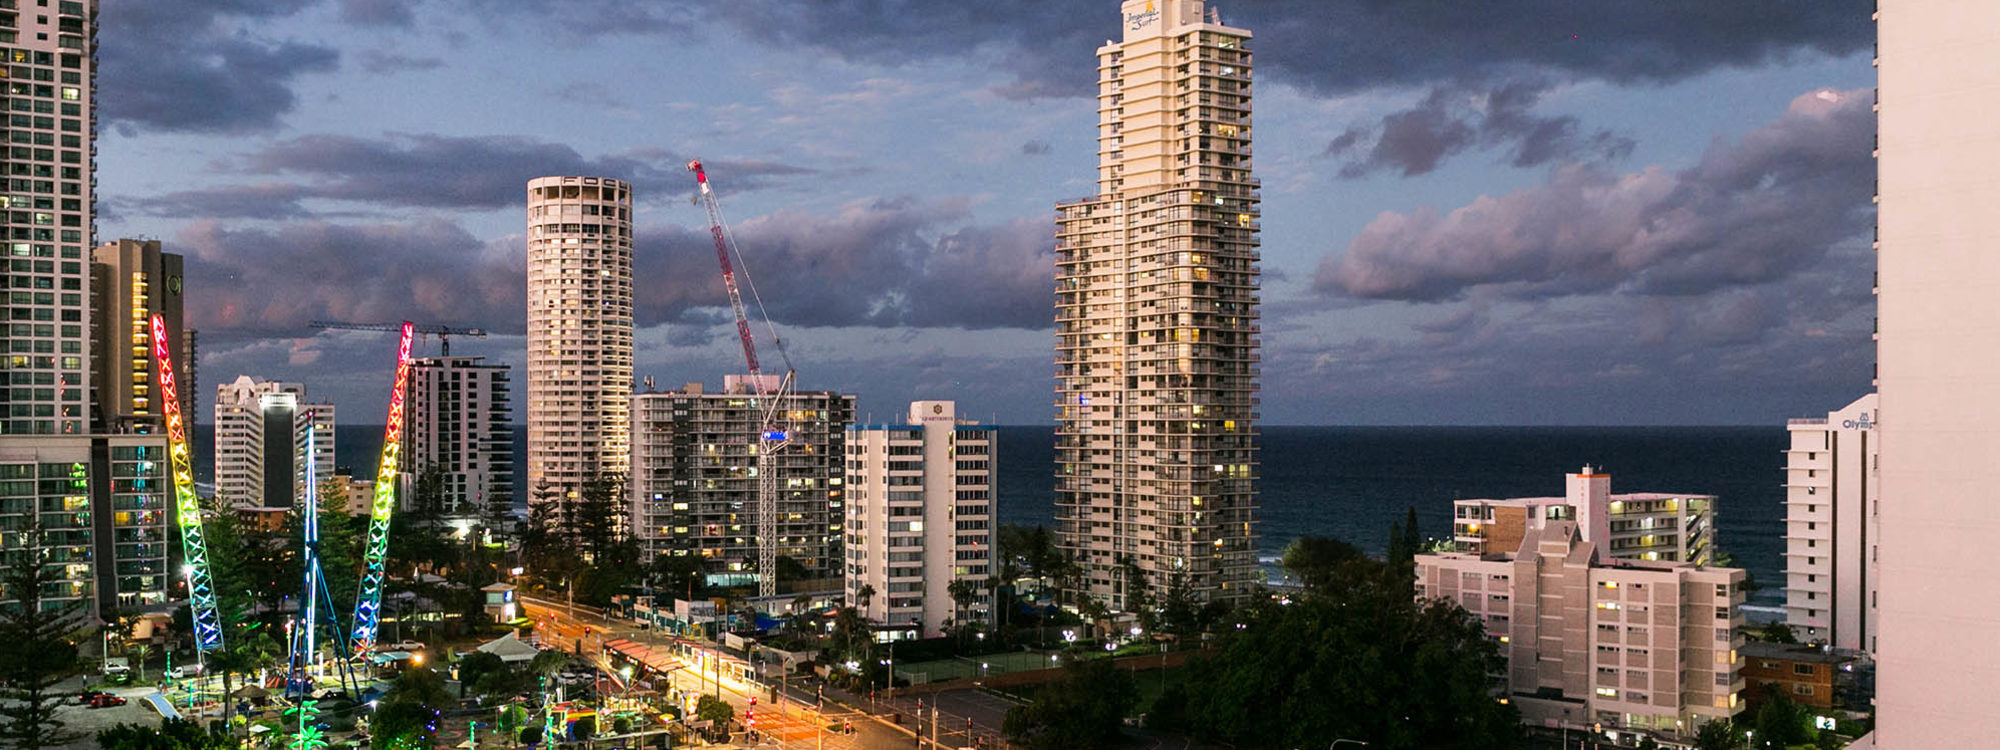 Surf Moon - Surfers Paradise - Twilight View North